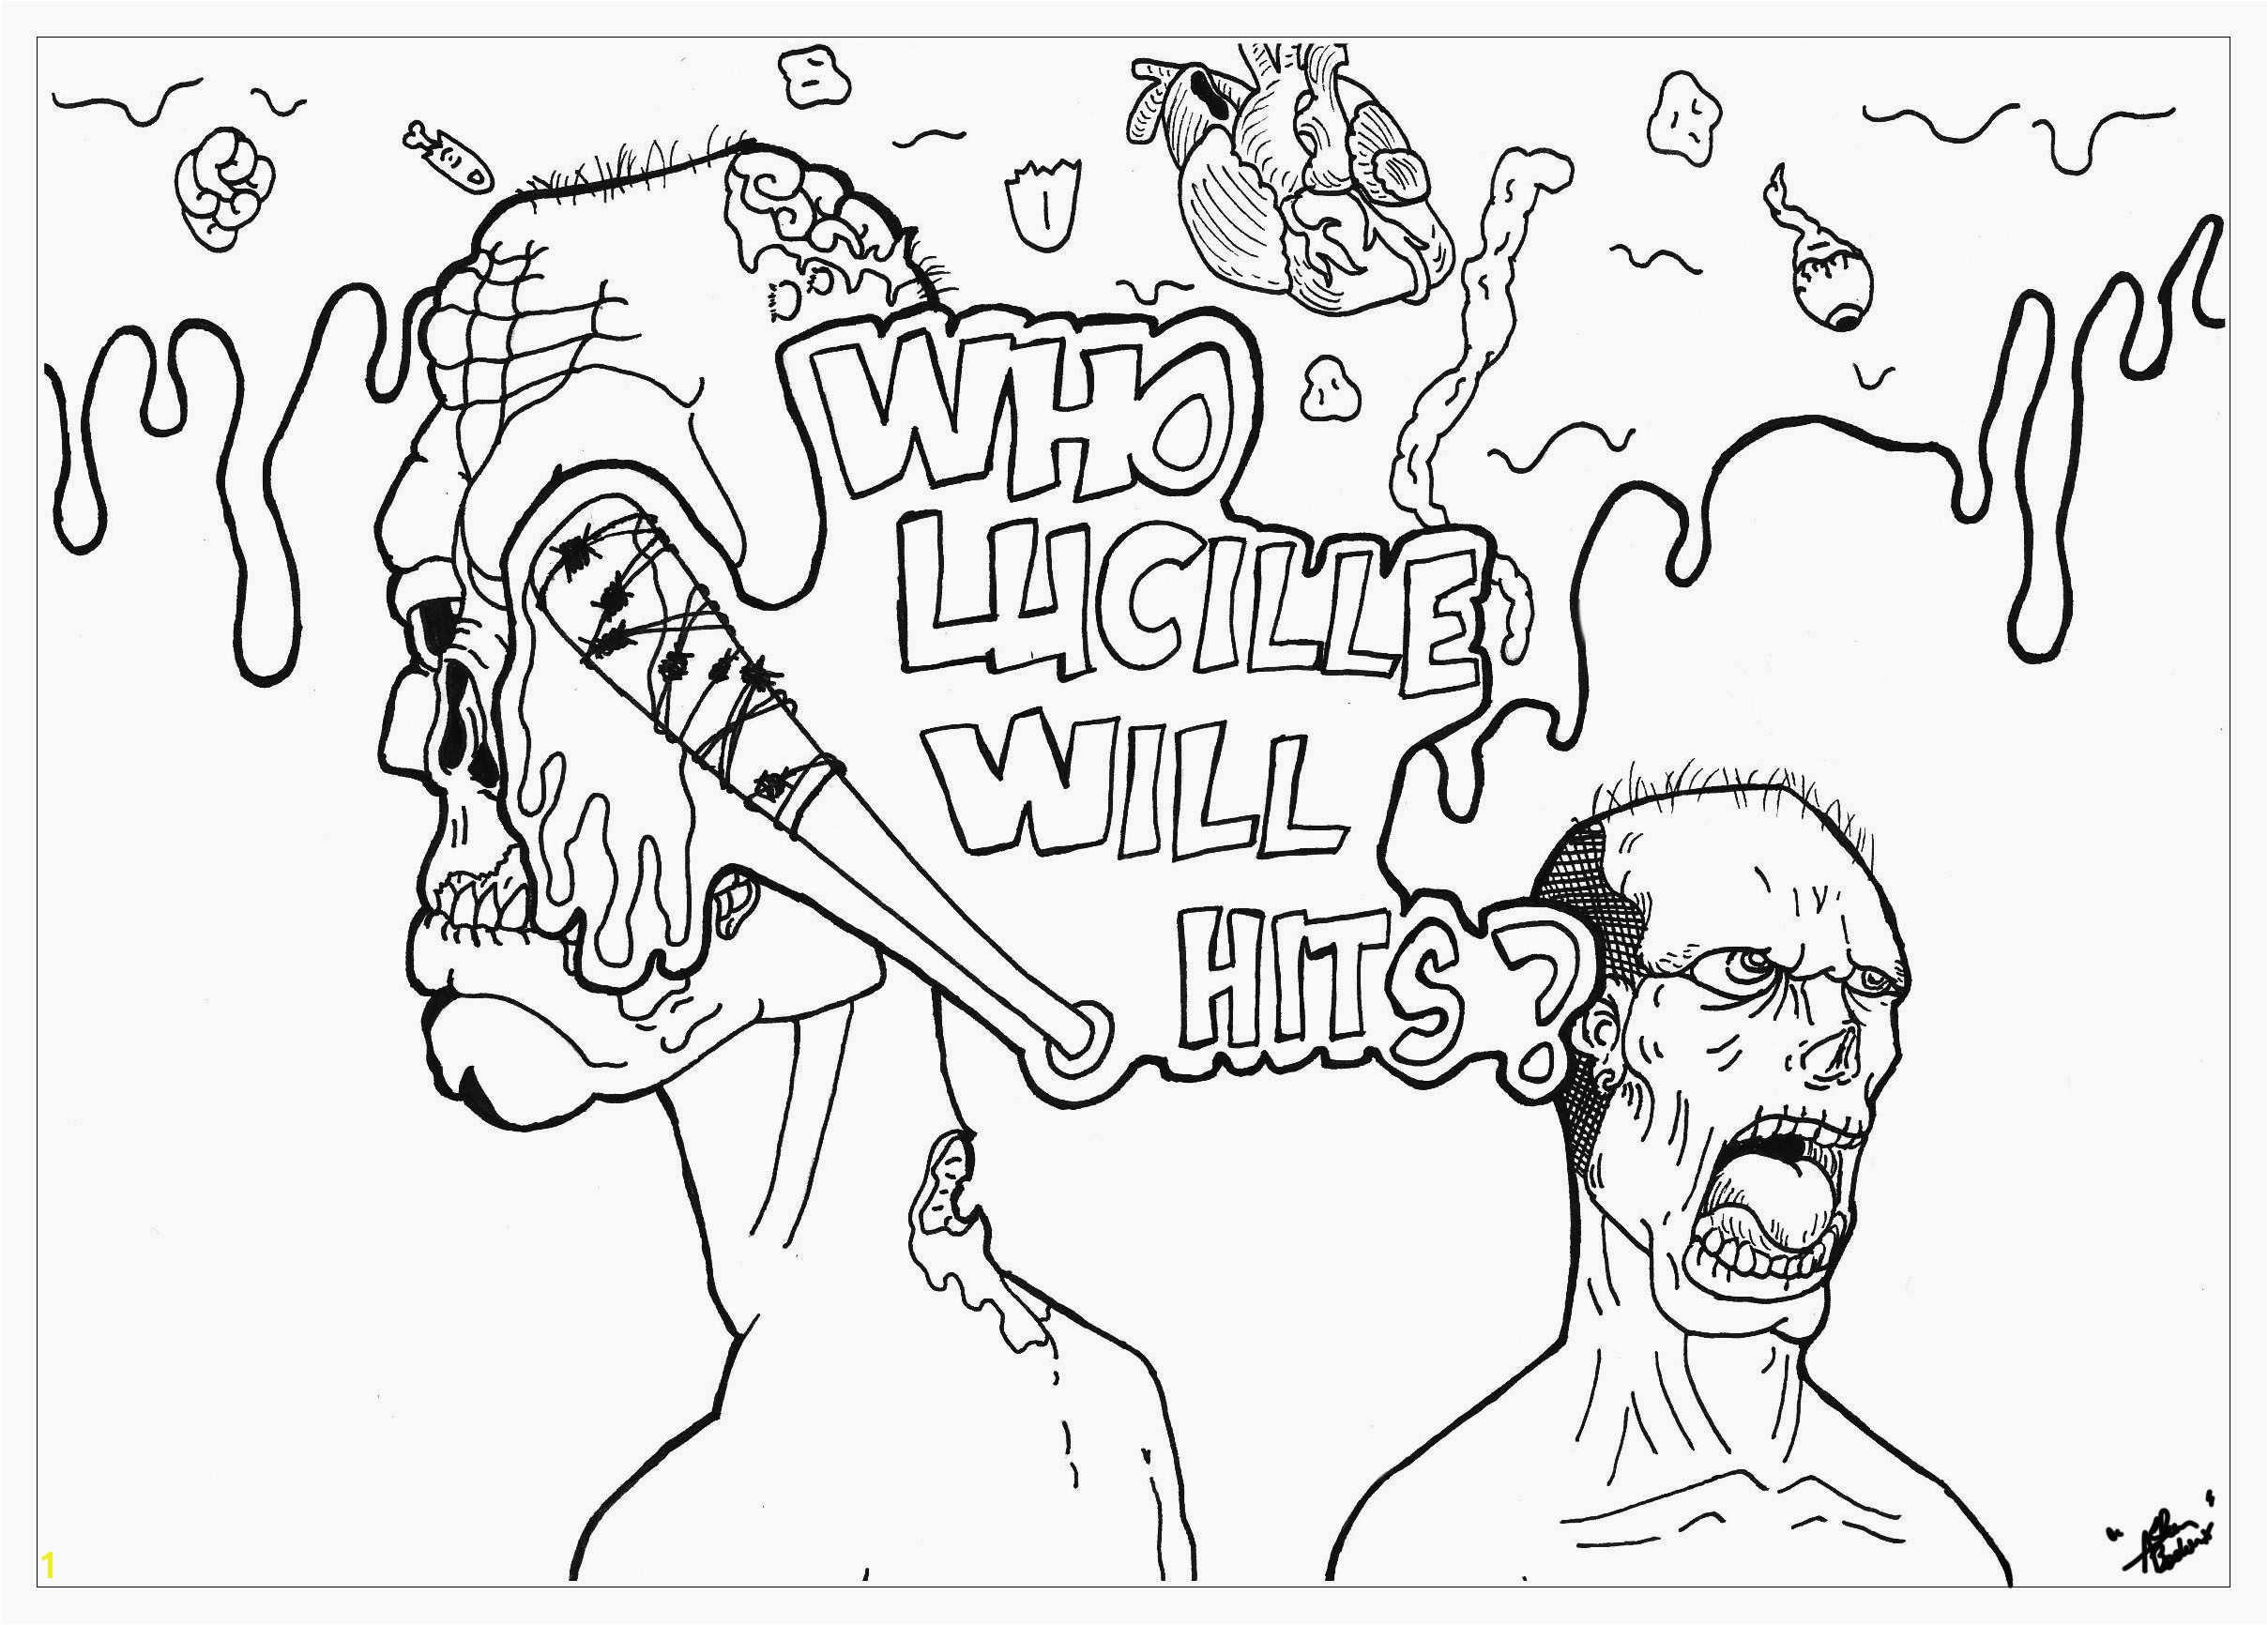 Walking Dead Zombie Coloring Pages Screaming Death Coloring Pages 48 Awesome Bible Coloring Pages for